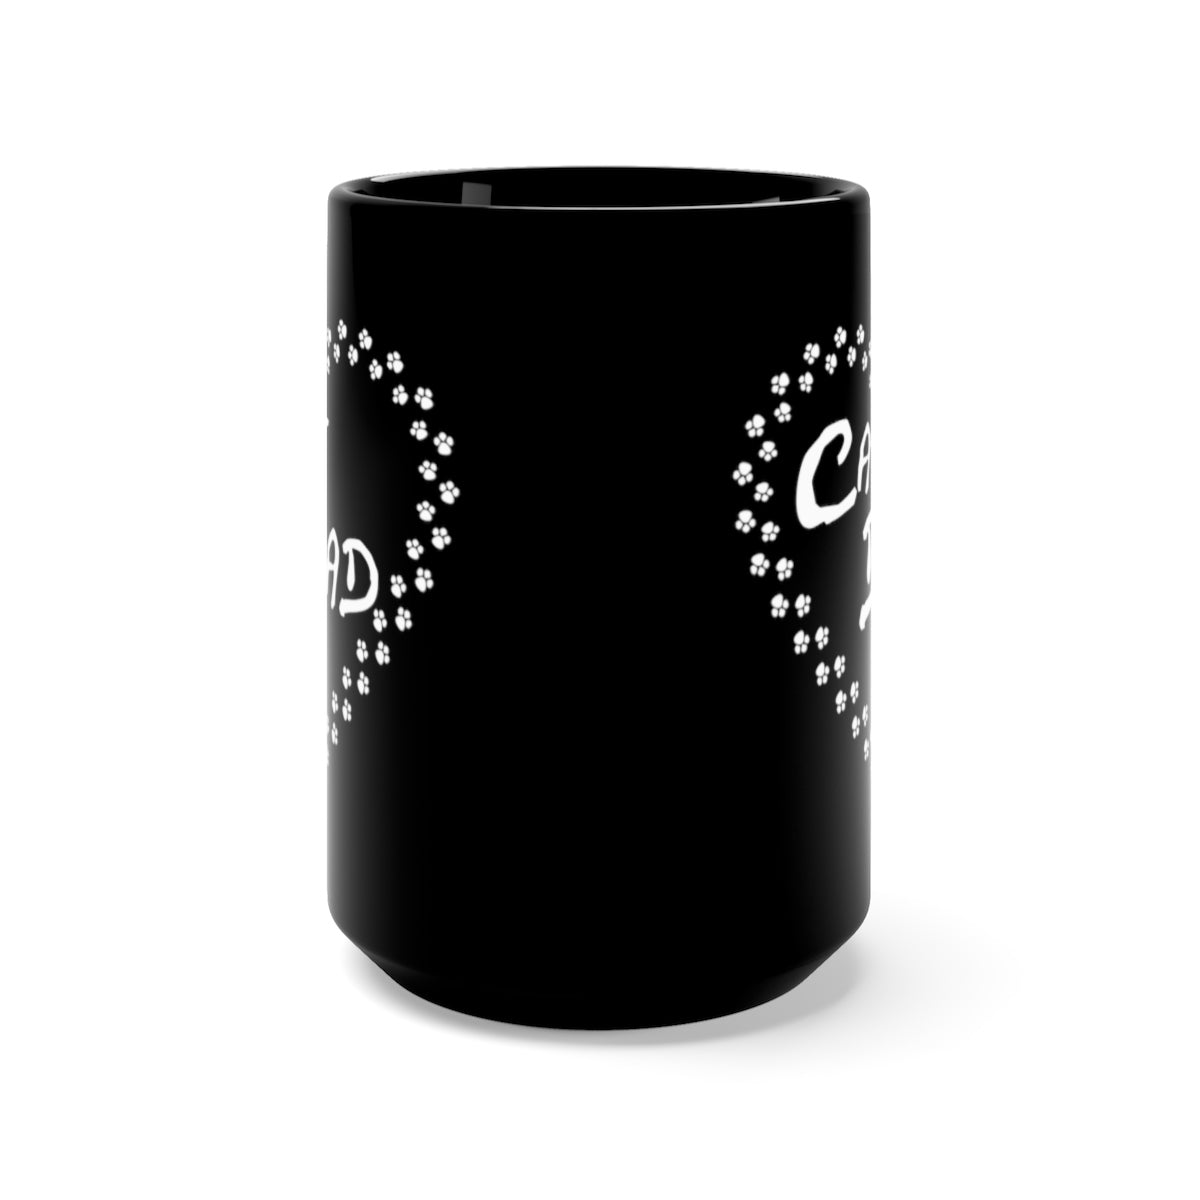 front view of black mug with cat dad white text surrounded by a heart made of cat paws